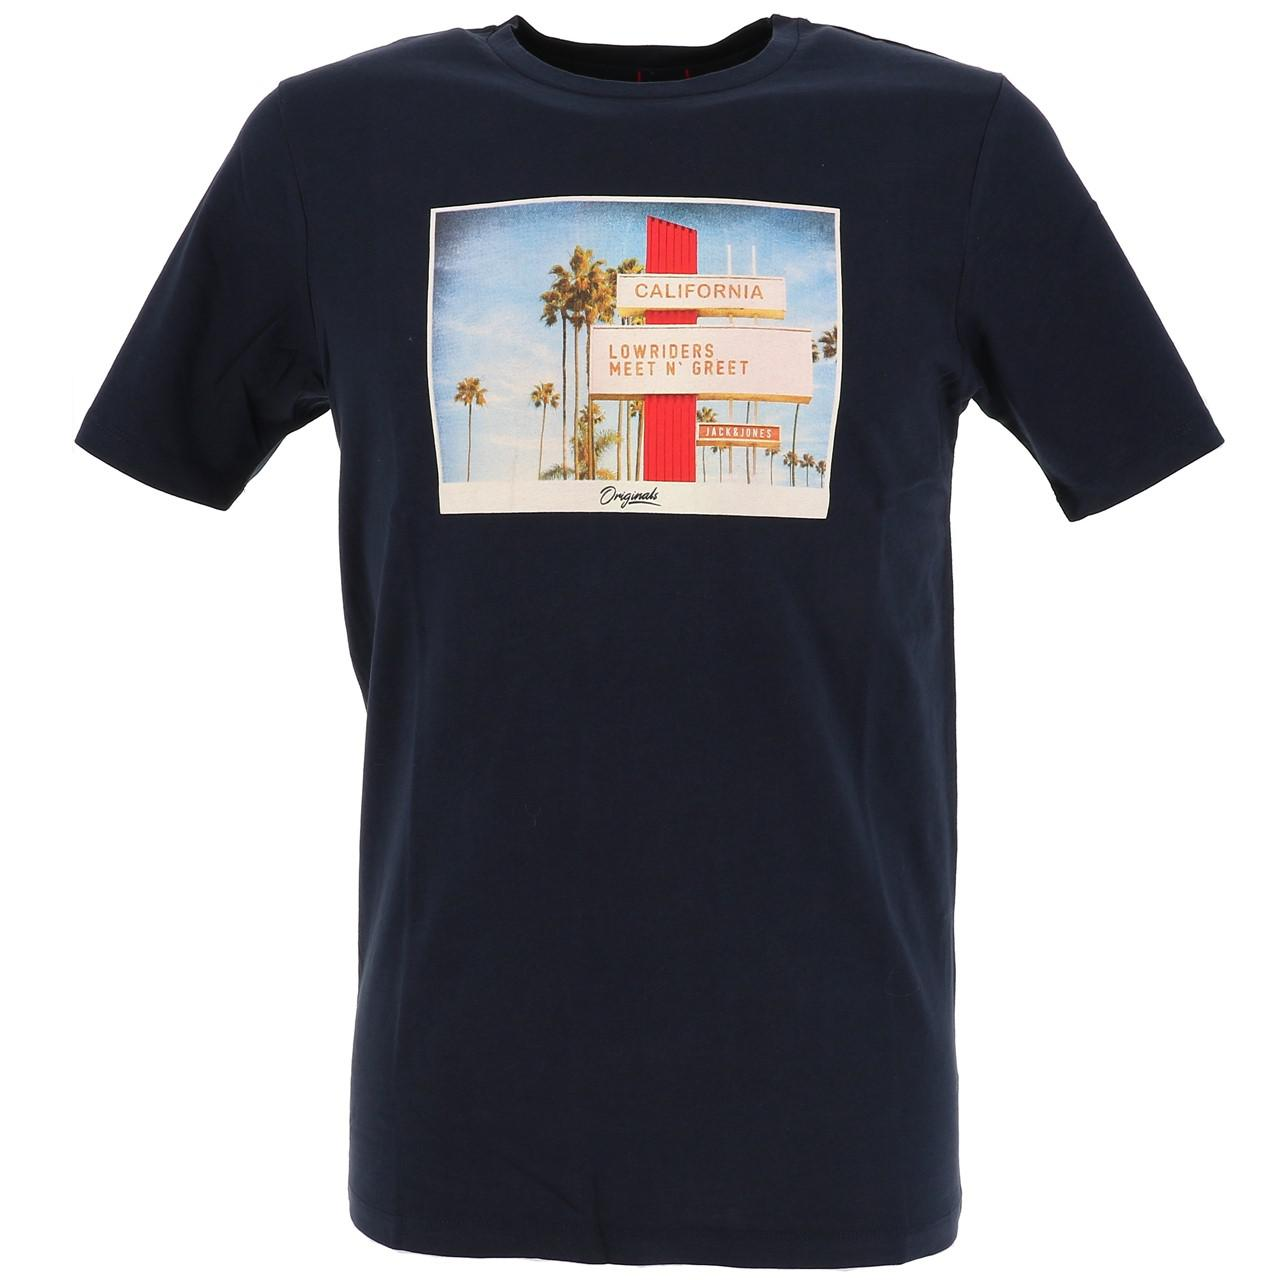 Short-Jack-and-jones-Hotel-Total-Eclipse-Tee-Blue-18535-Does-Not